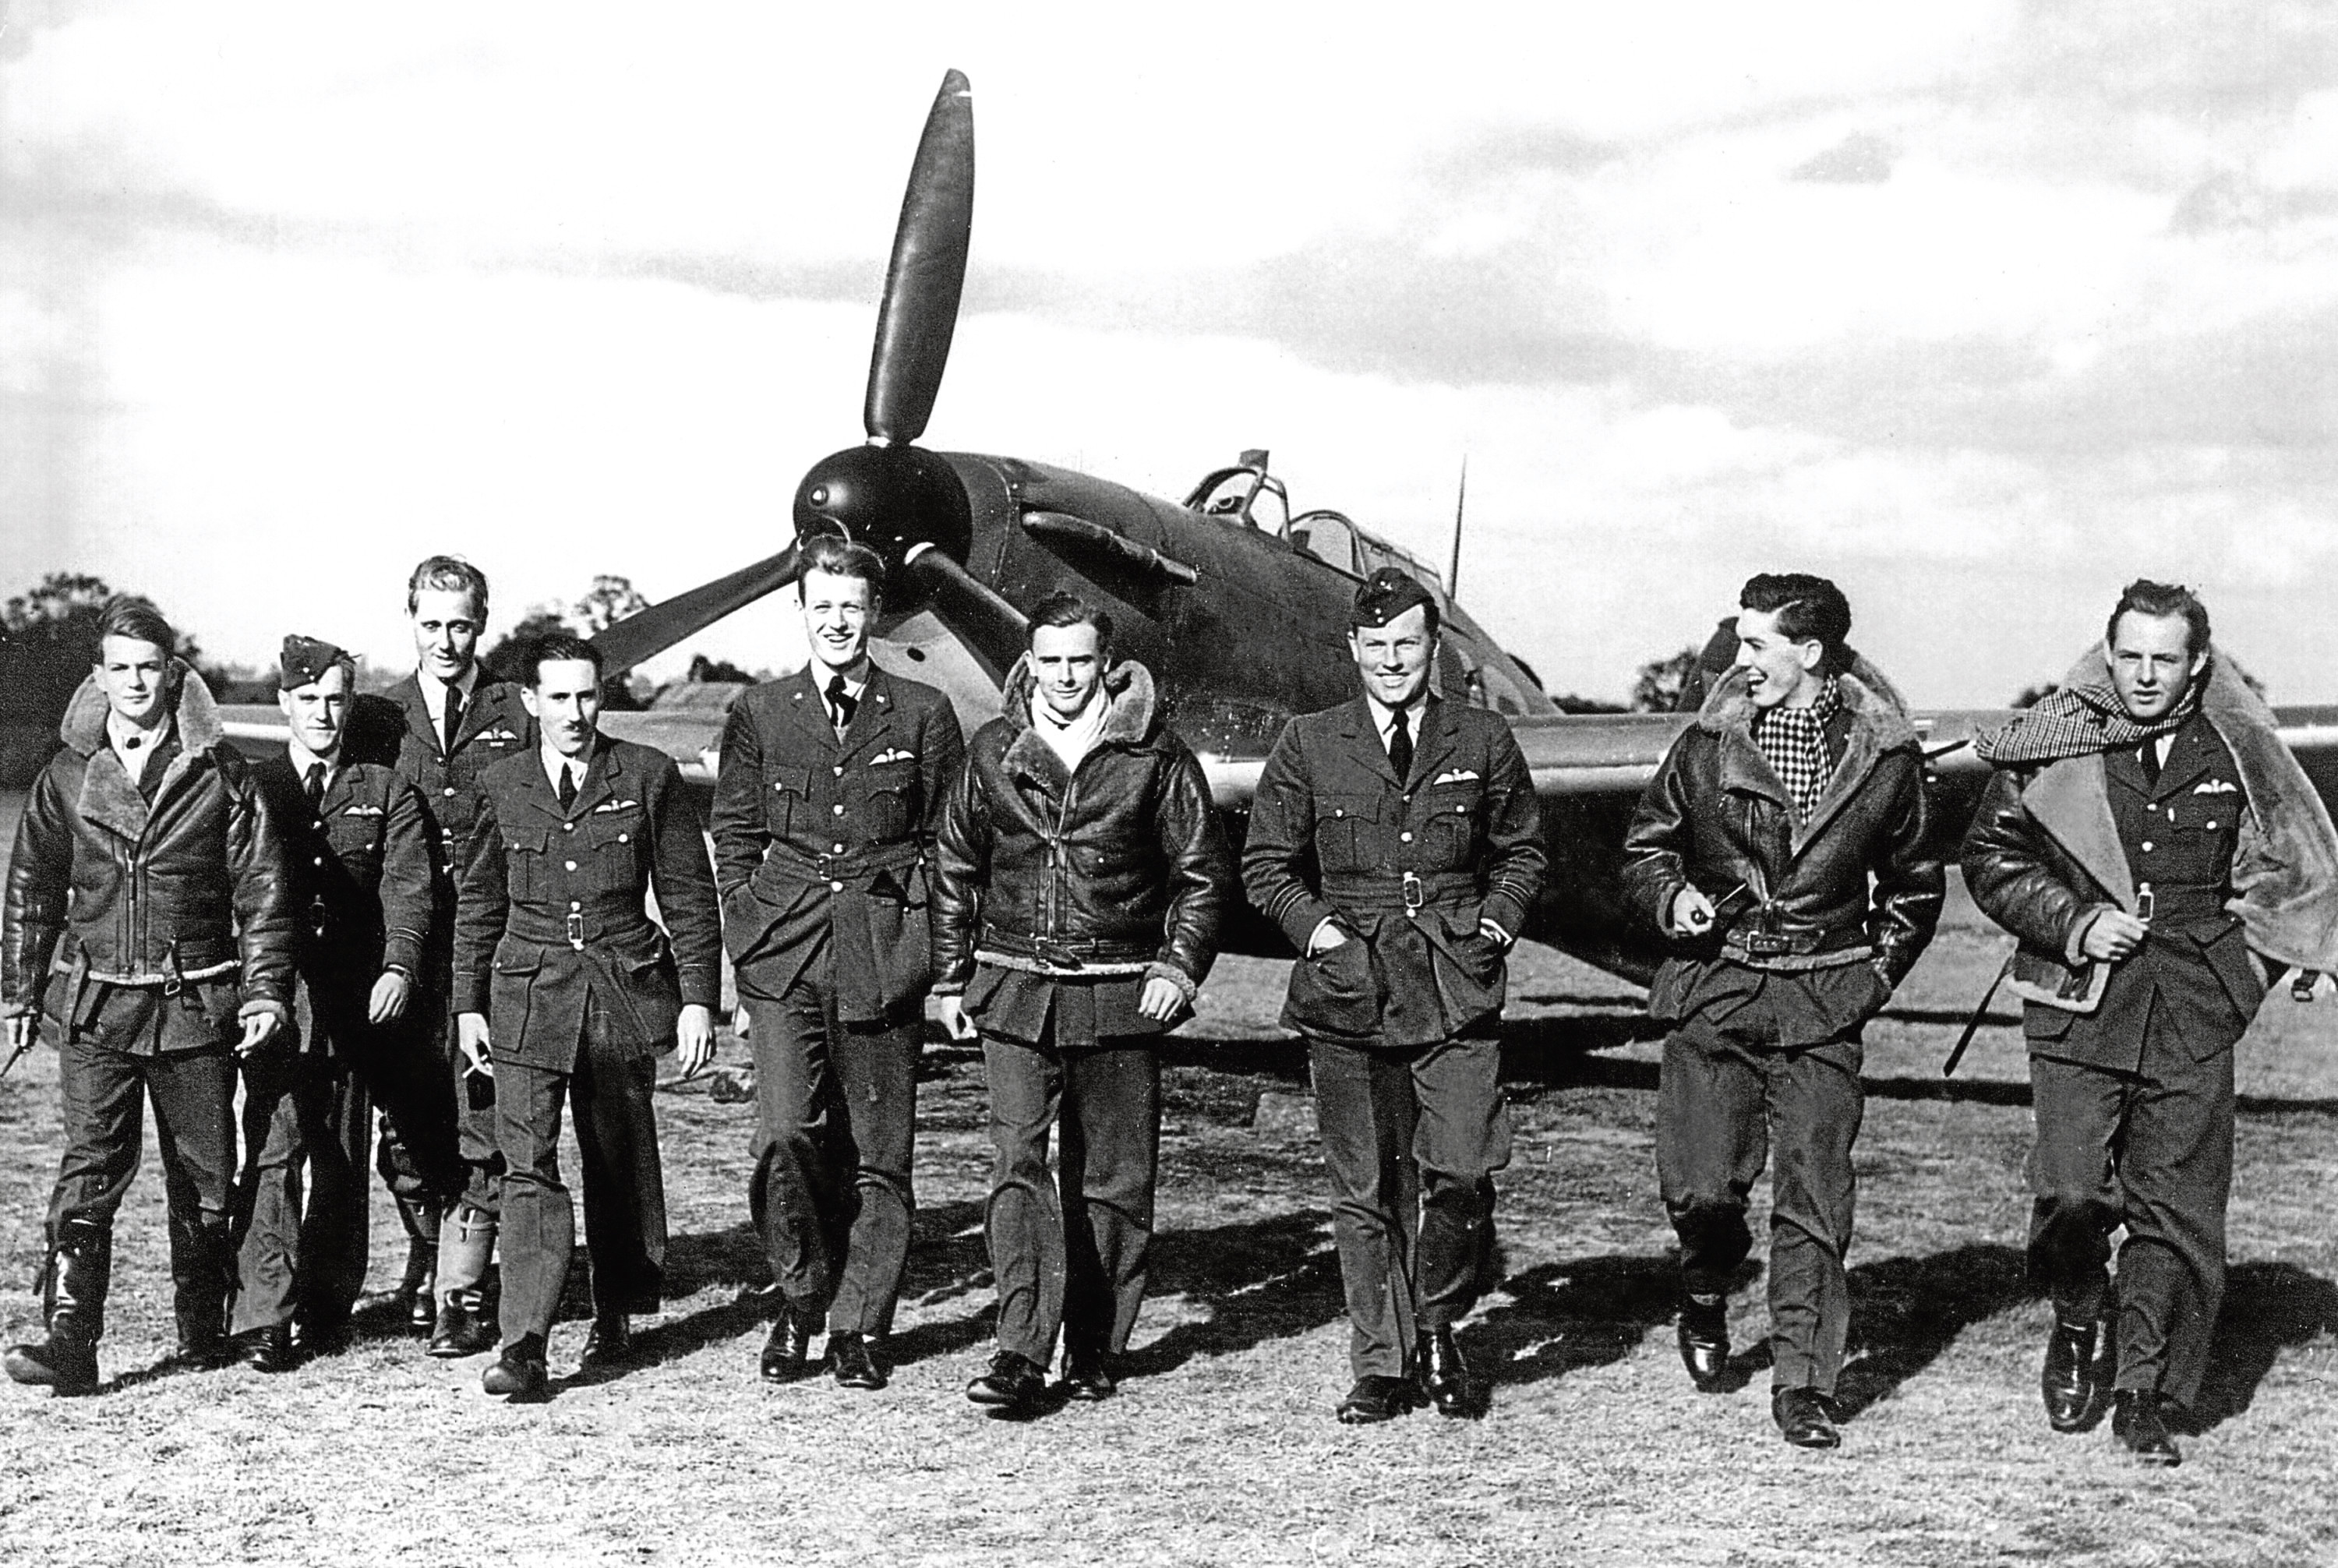 The RAF's No. 249 fighter squadron  at North Weald Airfield, Essex, in September 1940